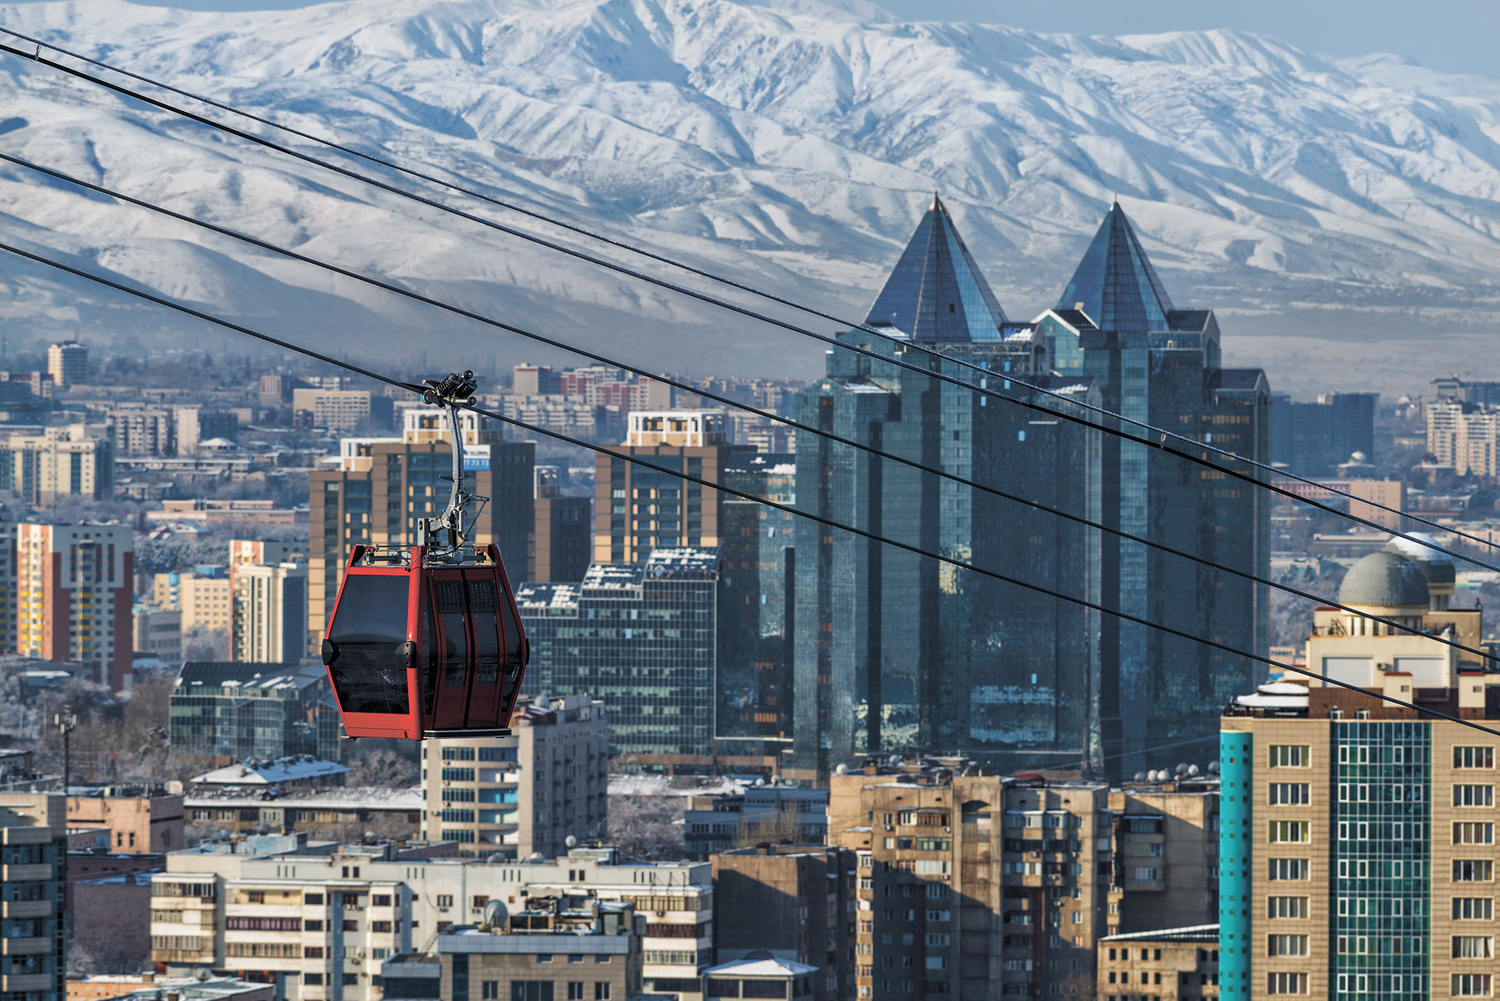 "<span style=""font-weight: bold;"">Almaty City Tour&nbsp;</span>"